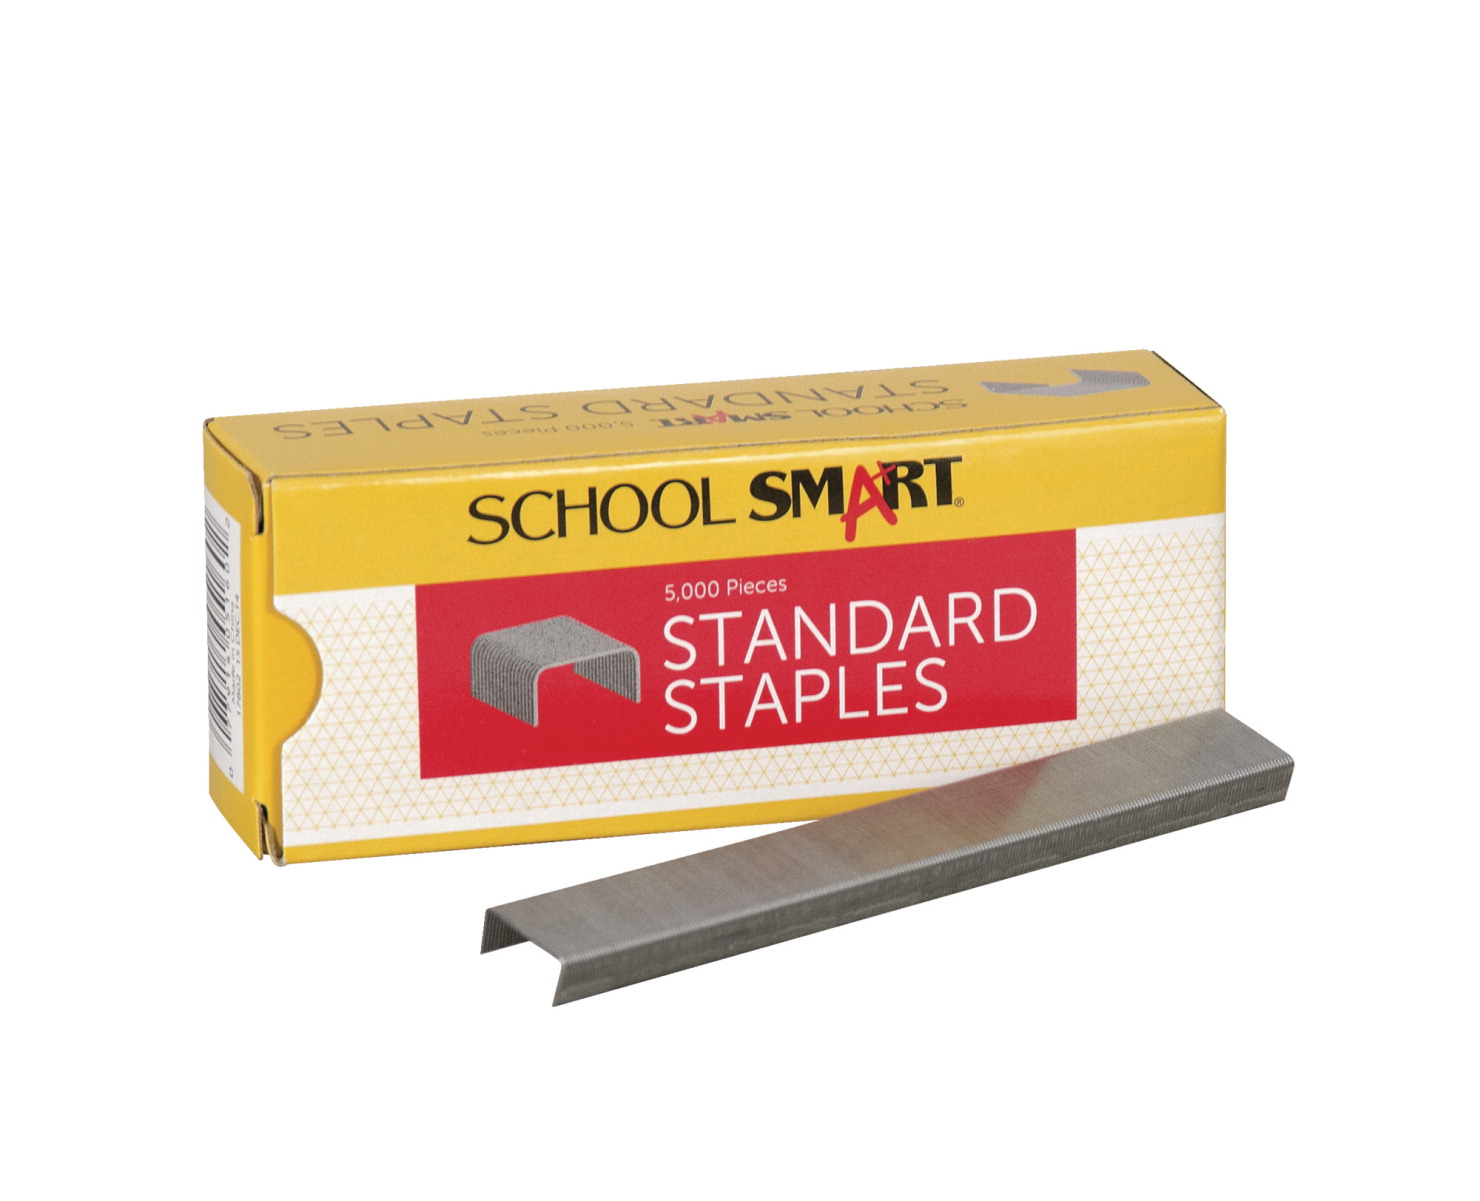 School Smart Standard Staples, 1 Pack of 5000